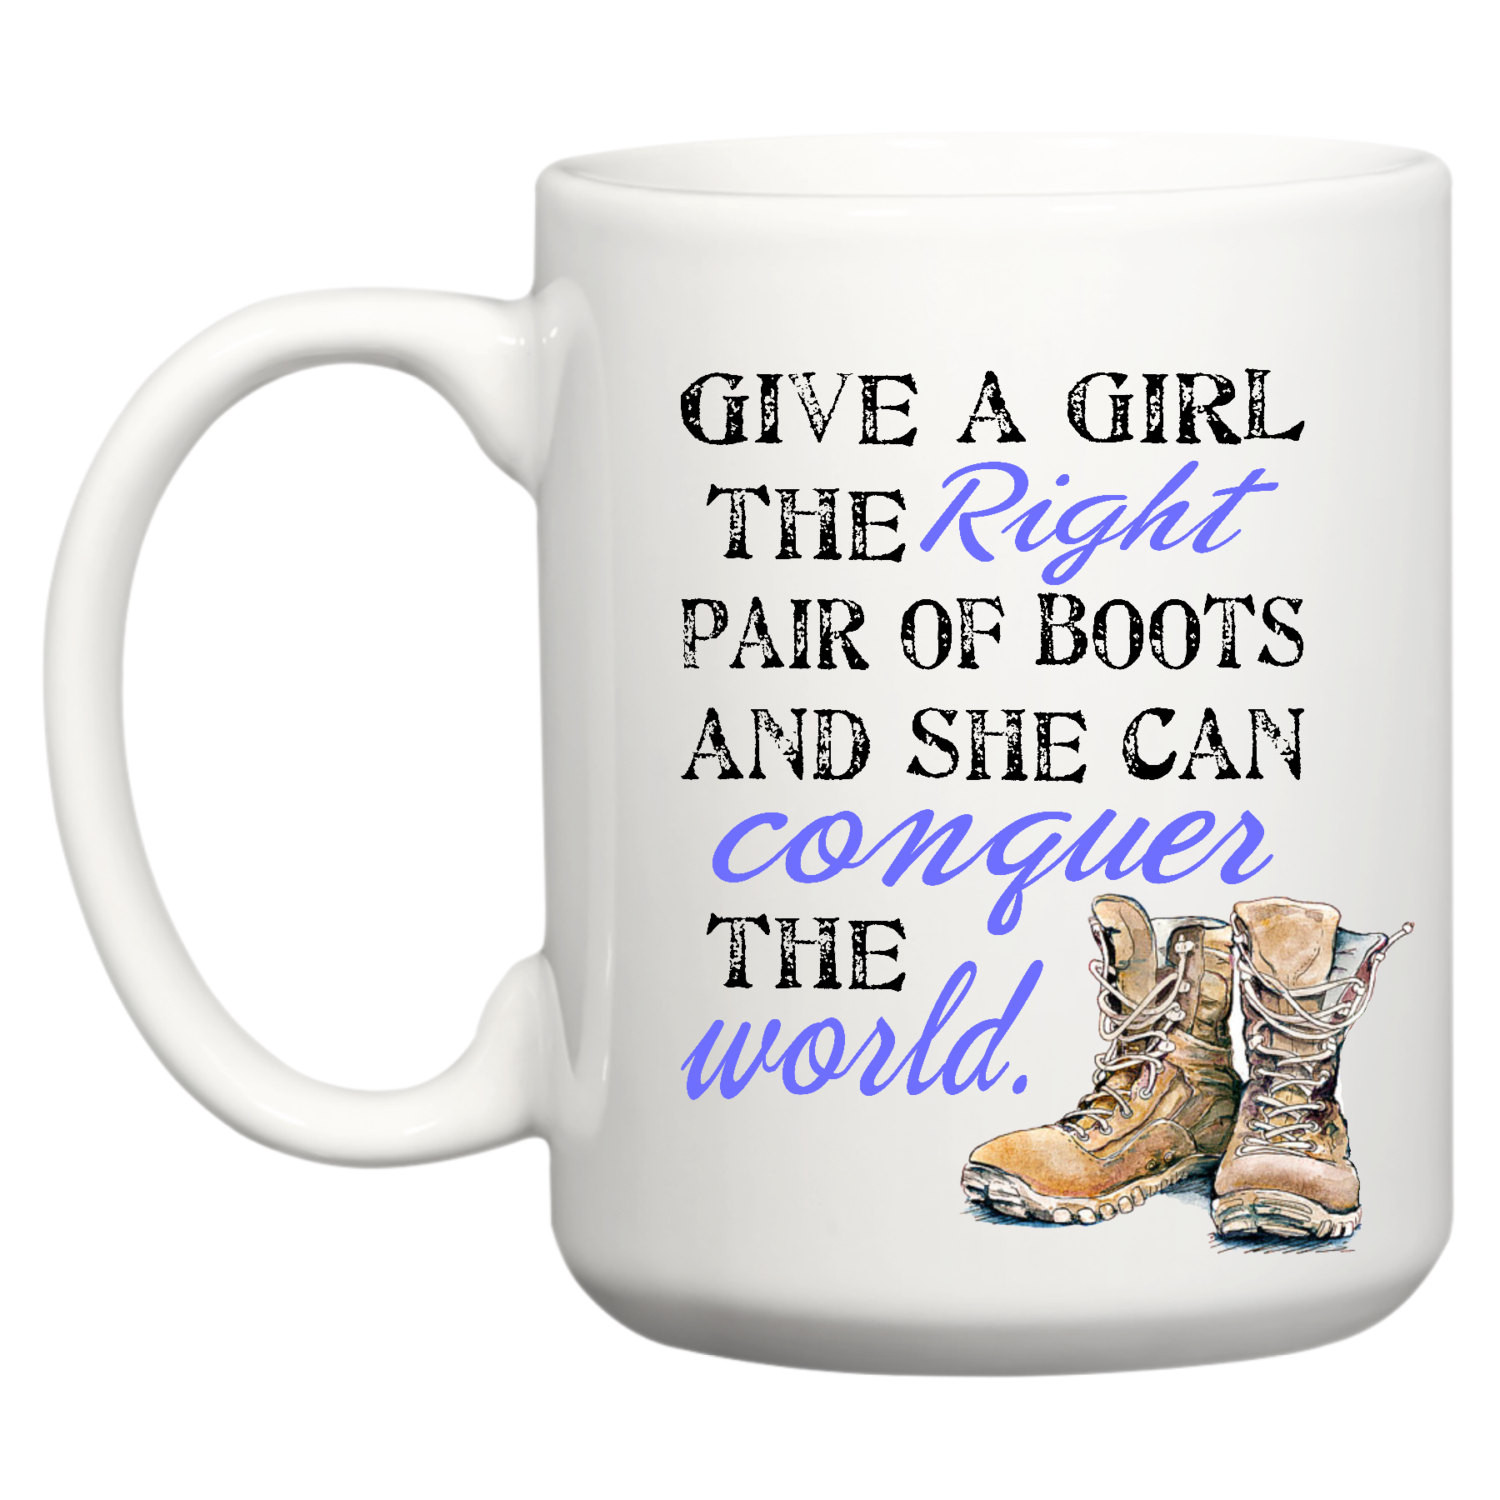 Graduation Gift Ideas For Army Boot Camp  Boot Camp Graduation Gift PCS Gift Air Force Army Navy